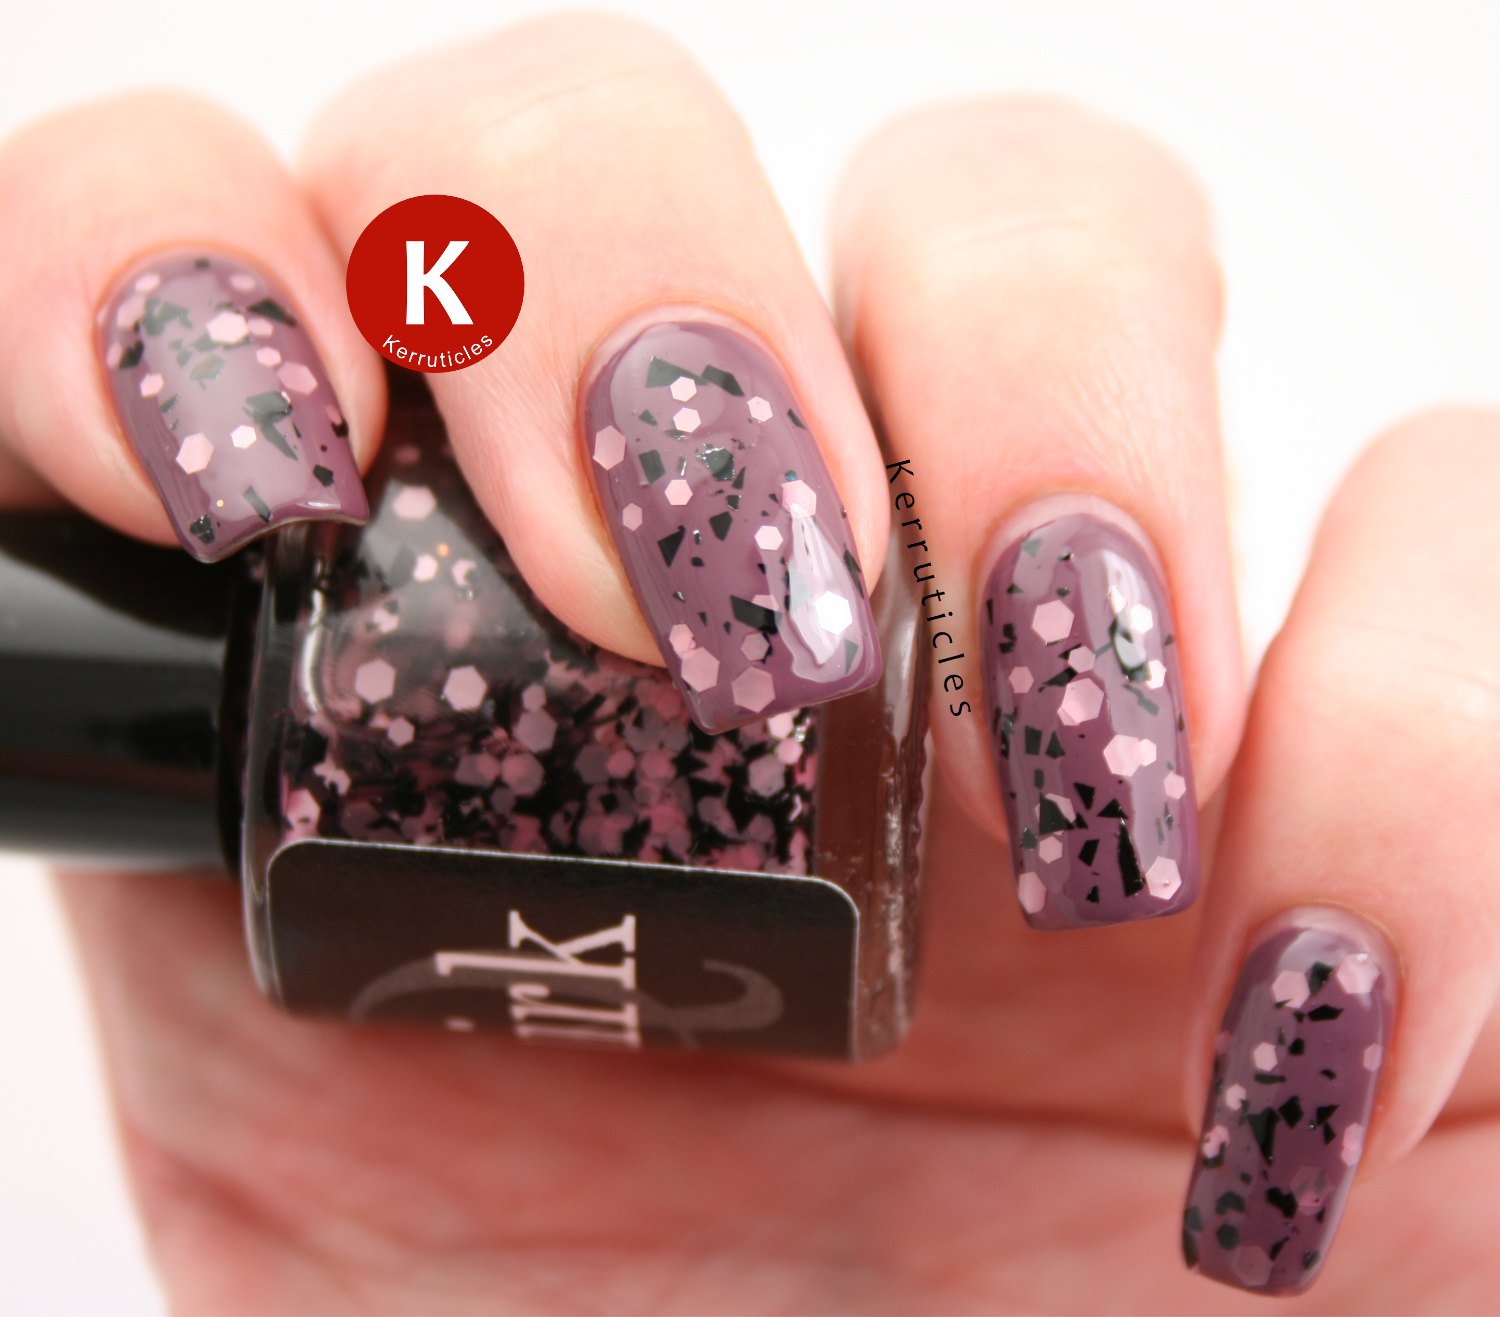 Quirk Eponine over Barry M Vintage Violet